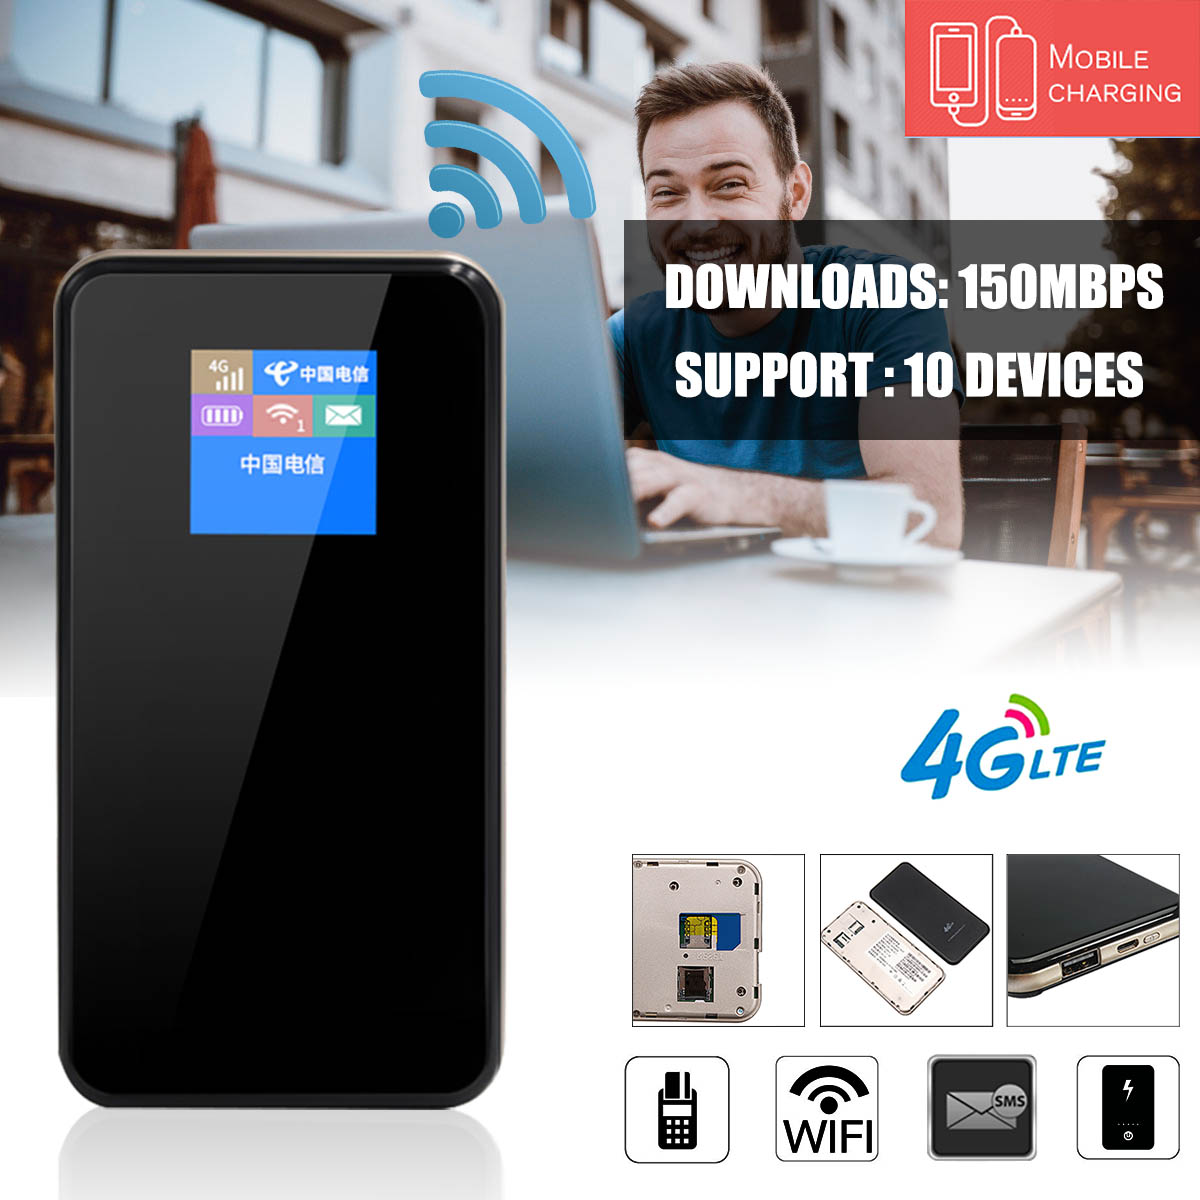 Multifunction 4G Mobile Wireless Wifi Router Modem  MF768 5Mode LCD Screen 8800mAh Charger 150Mbps High Speed for Car HomeMultifunction 4G Mobile Wireless Wifi Router Modem  MF768 5Mode LCD Screen 8800mAh Charger 150Mbps High Speed for Car Home